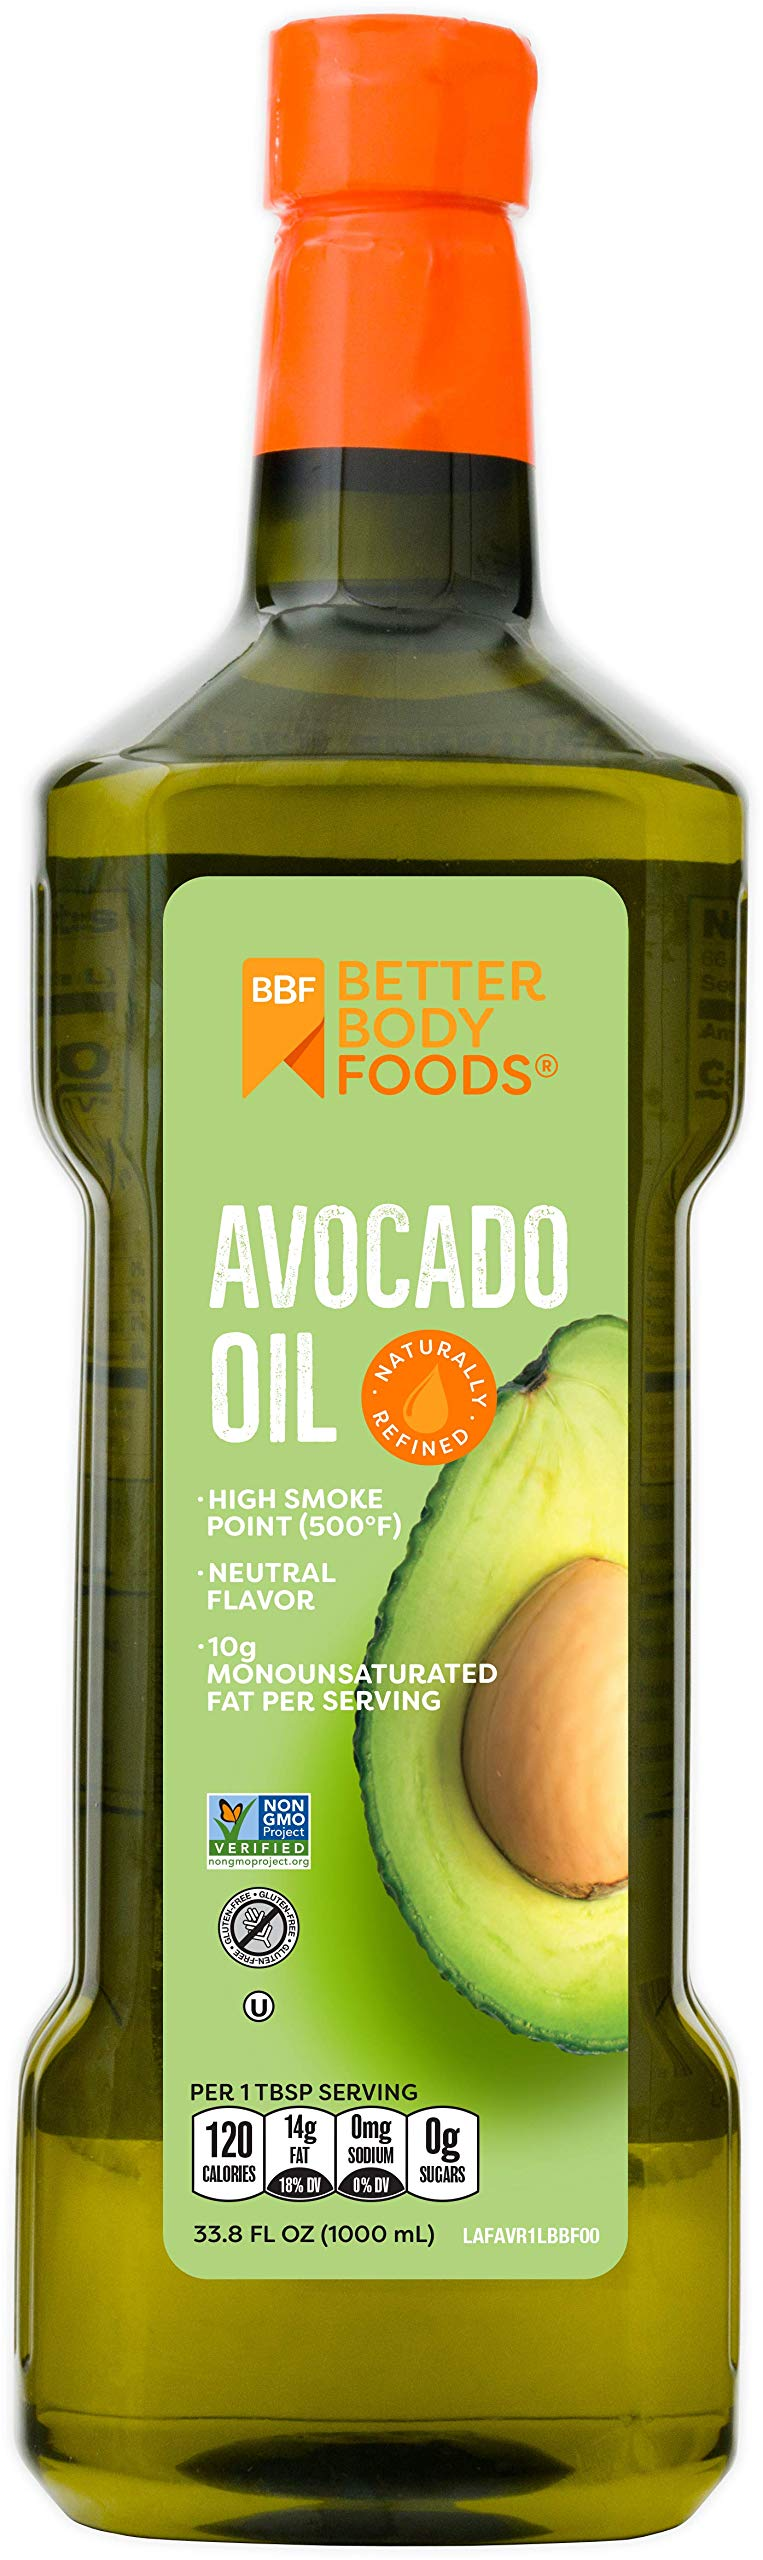 Betterbody Foods Avocado Oil, 33.8 Oz (1 L) by BetterBody Foods & Nutrition